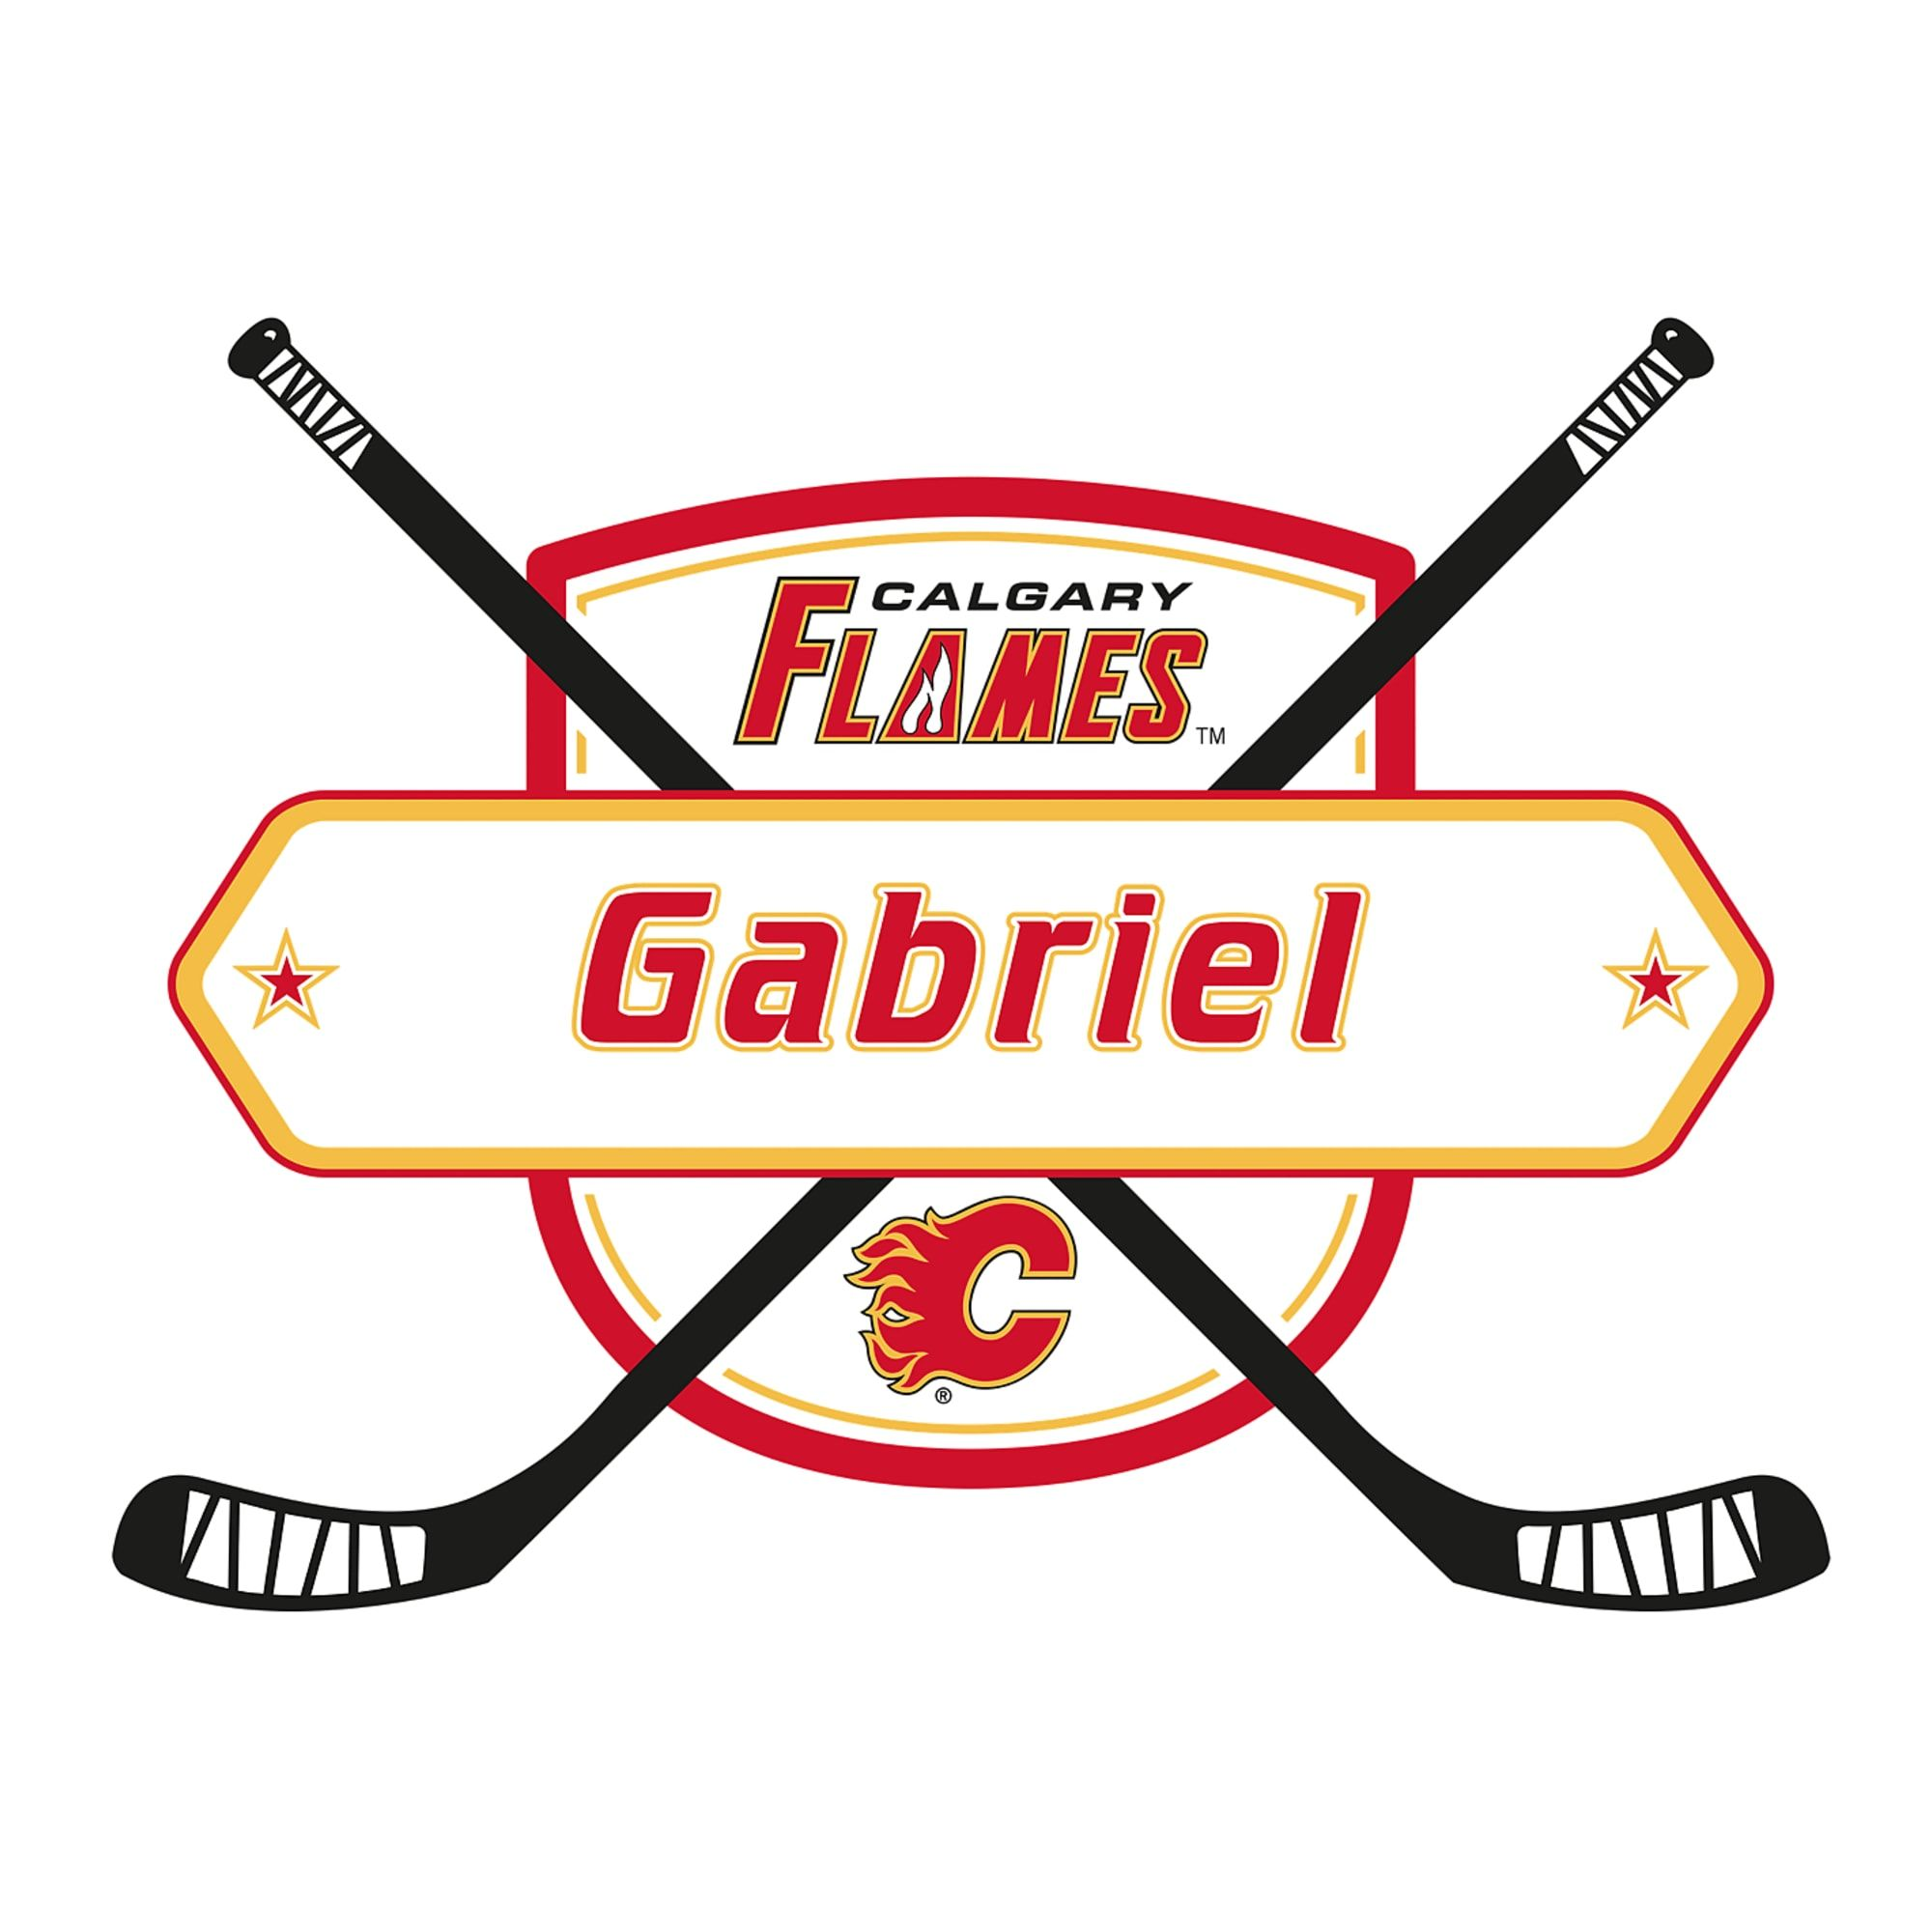 Calgary Flames Personalized Name Giant Nhl Transfer Decal Name Wall Decals Calgary Nhl